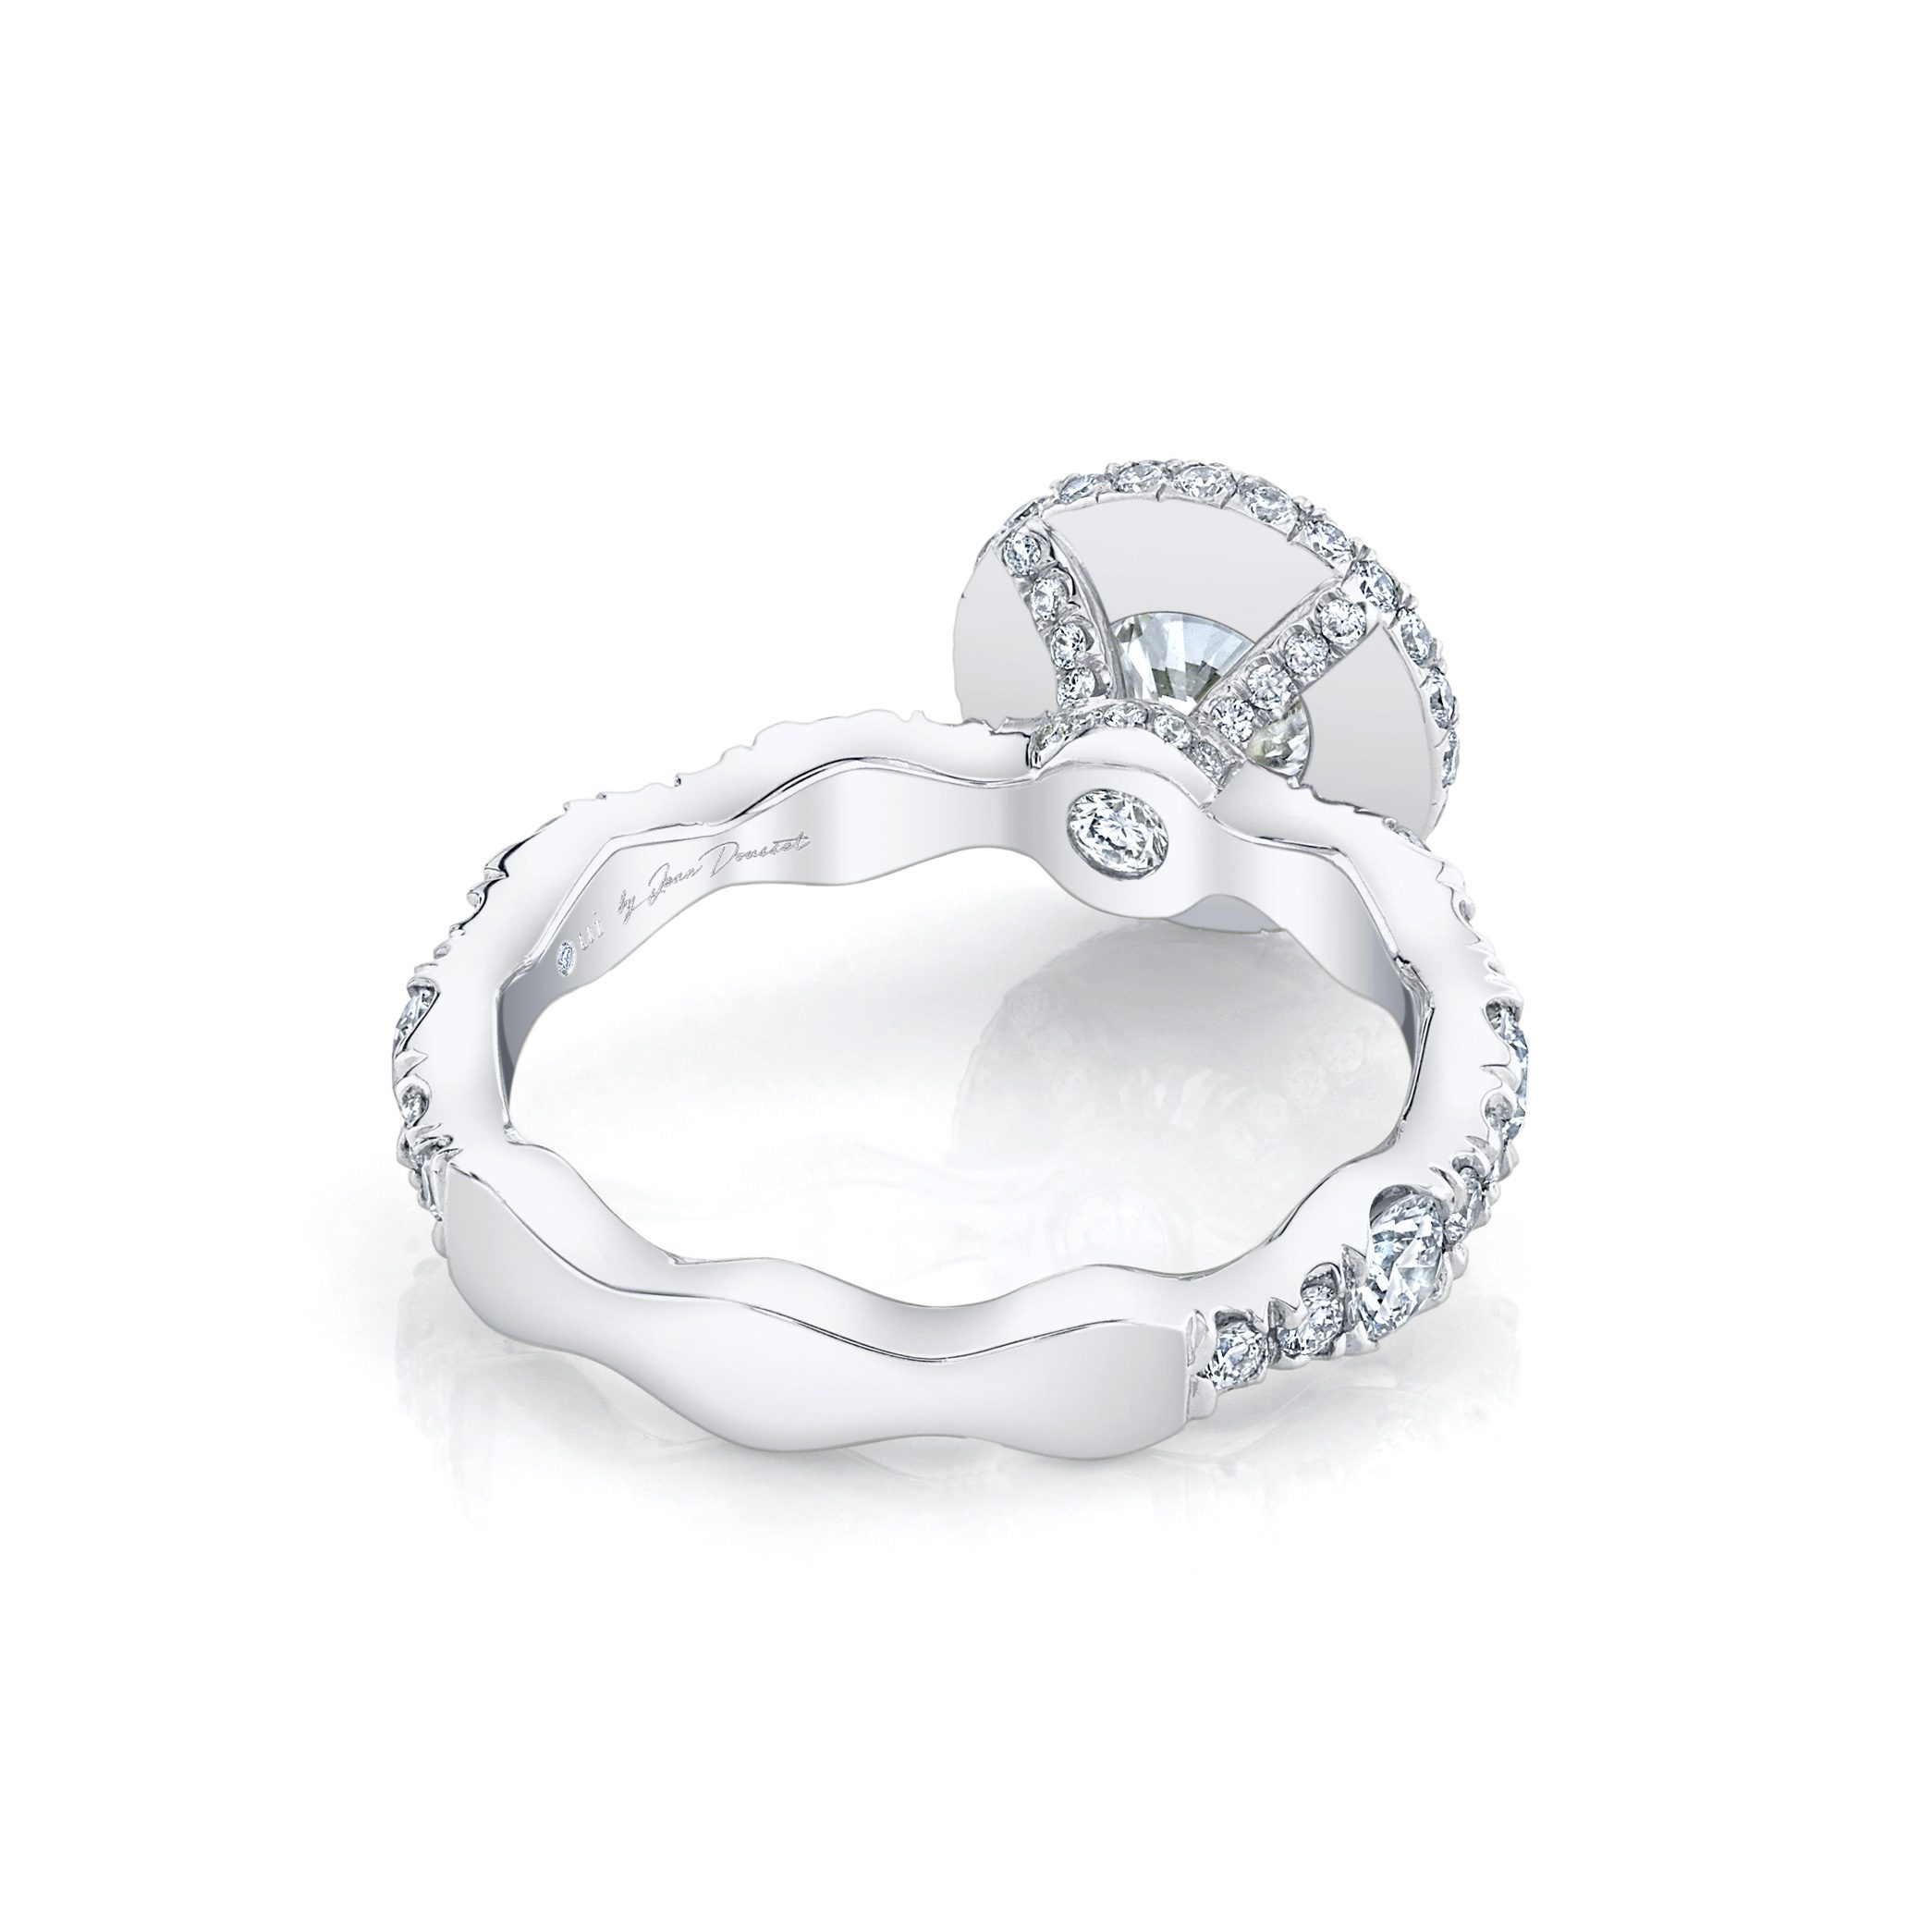 Yvonne Round Brilliant Seamless Halo® Engagement Ring 18k White Gold Back View by Oui by Jean Dousset